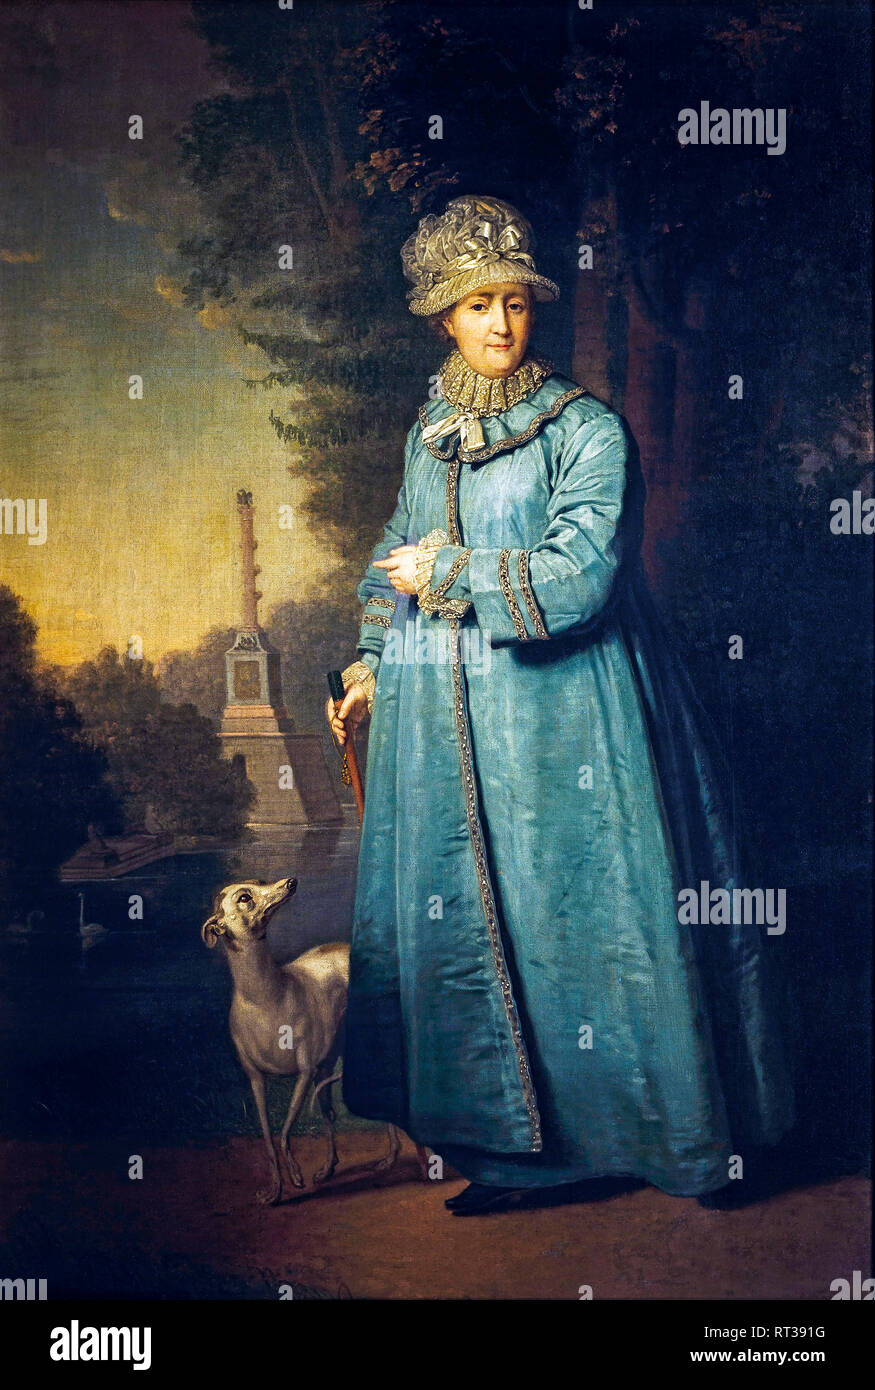 Catherine II, Empress of Russia during a walk in the Tsarskosyelsky Park with the Chesmensky Column in the background, 1794 painting - Stock Image